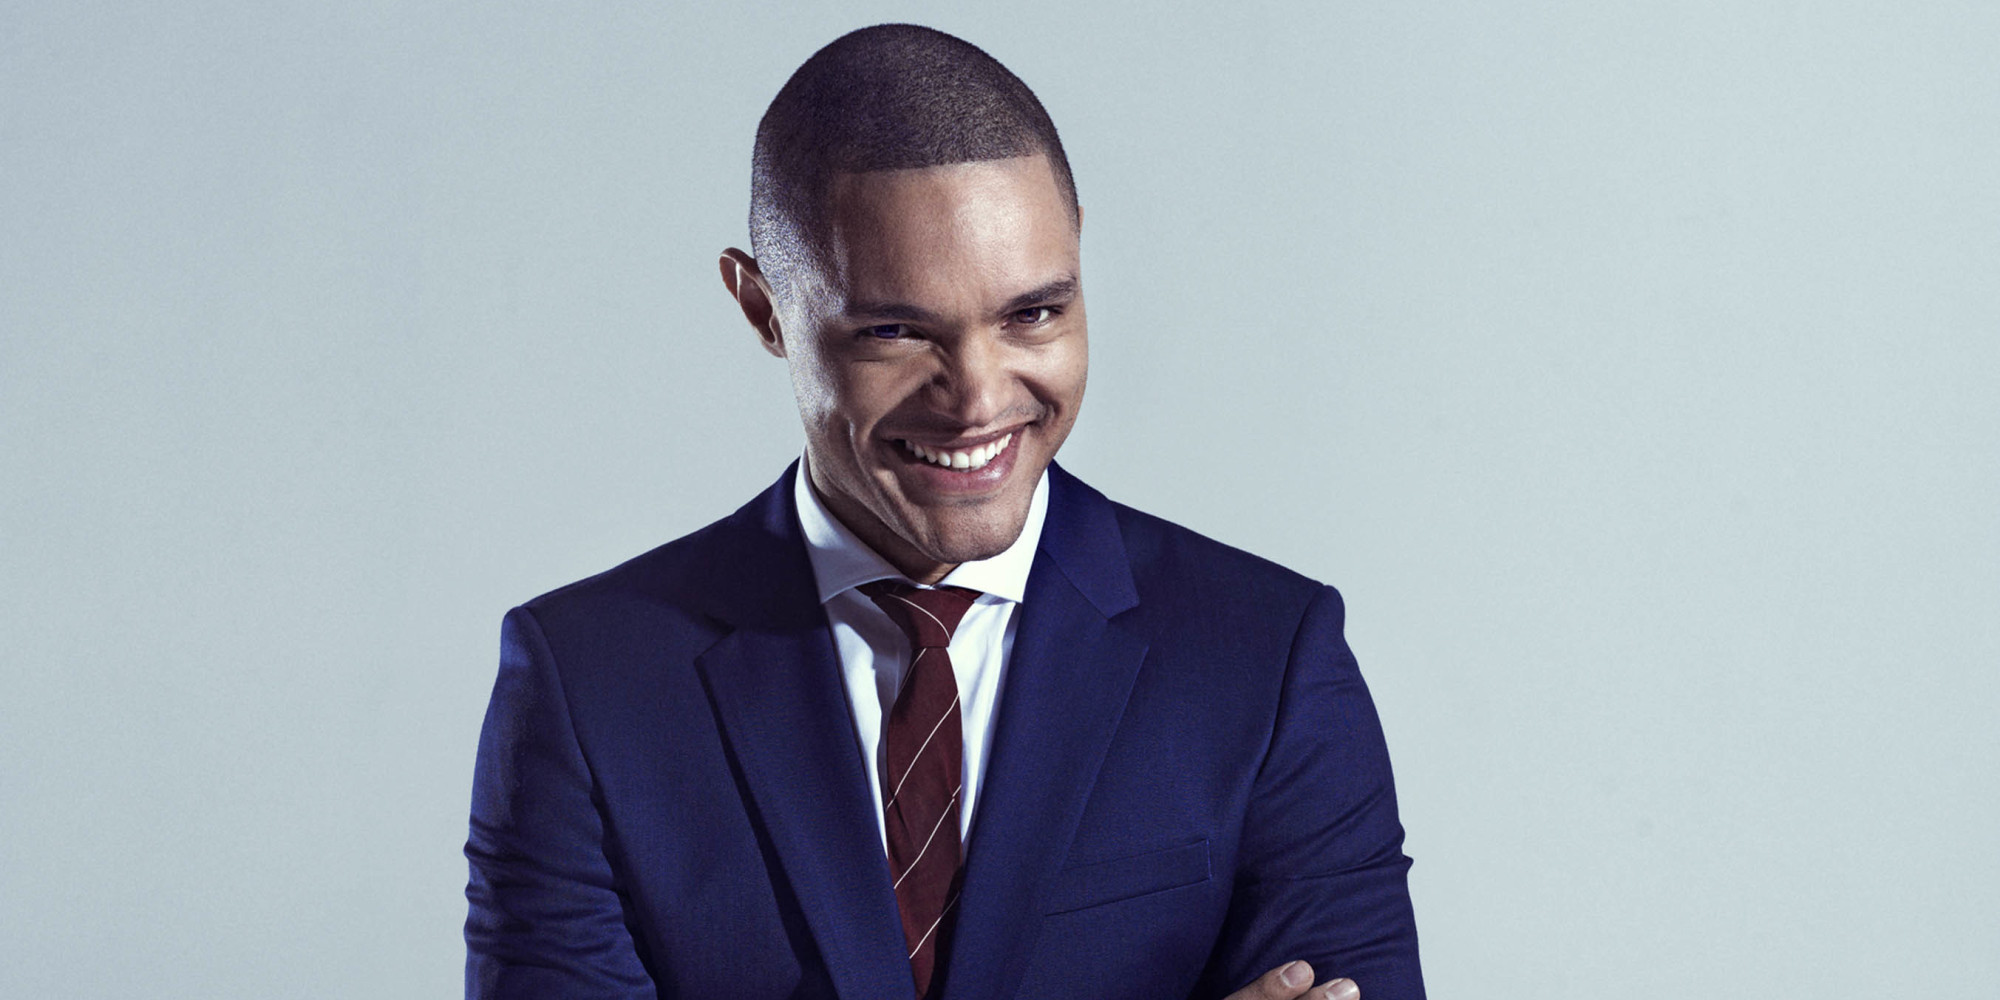 Trevor Noah earned a  million dollar salary, leaving the net worth at 2 million in 2017